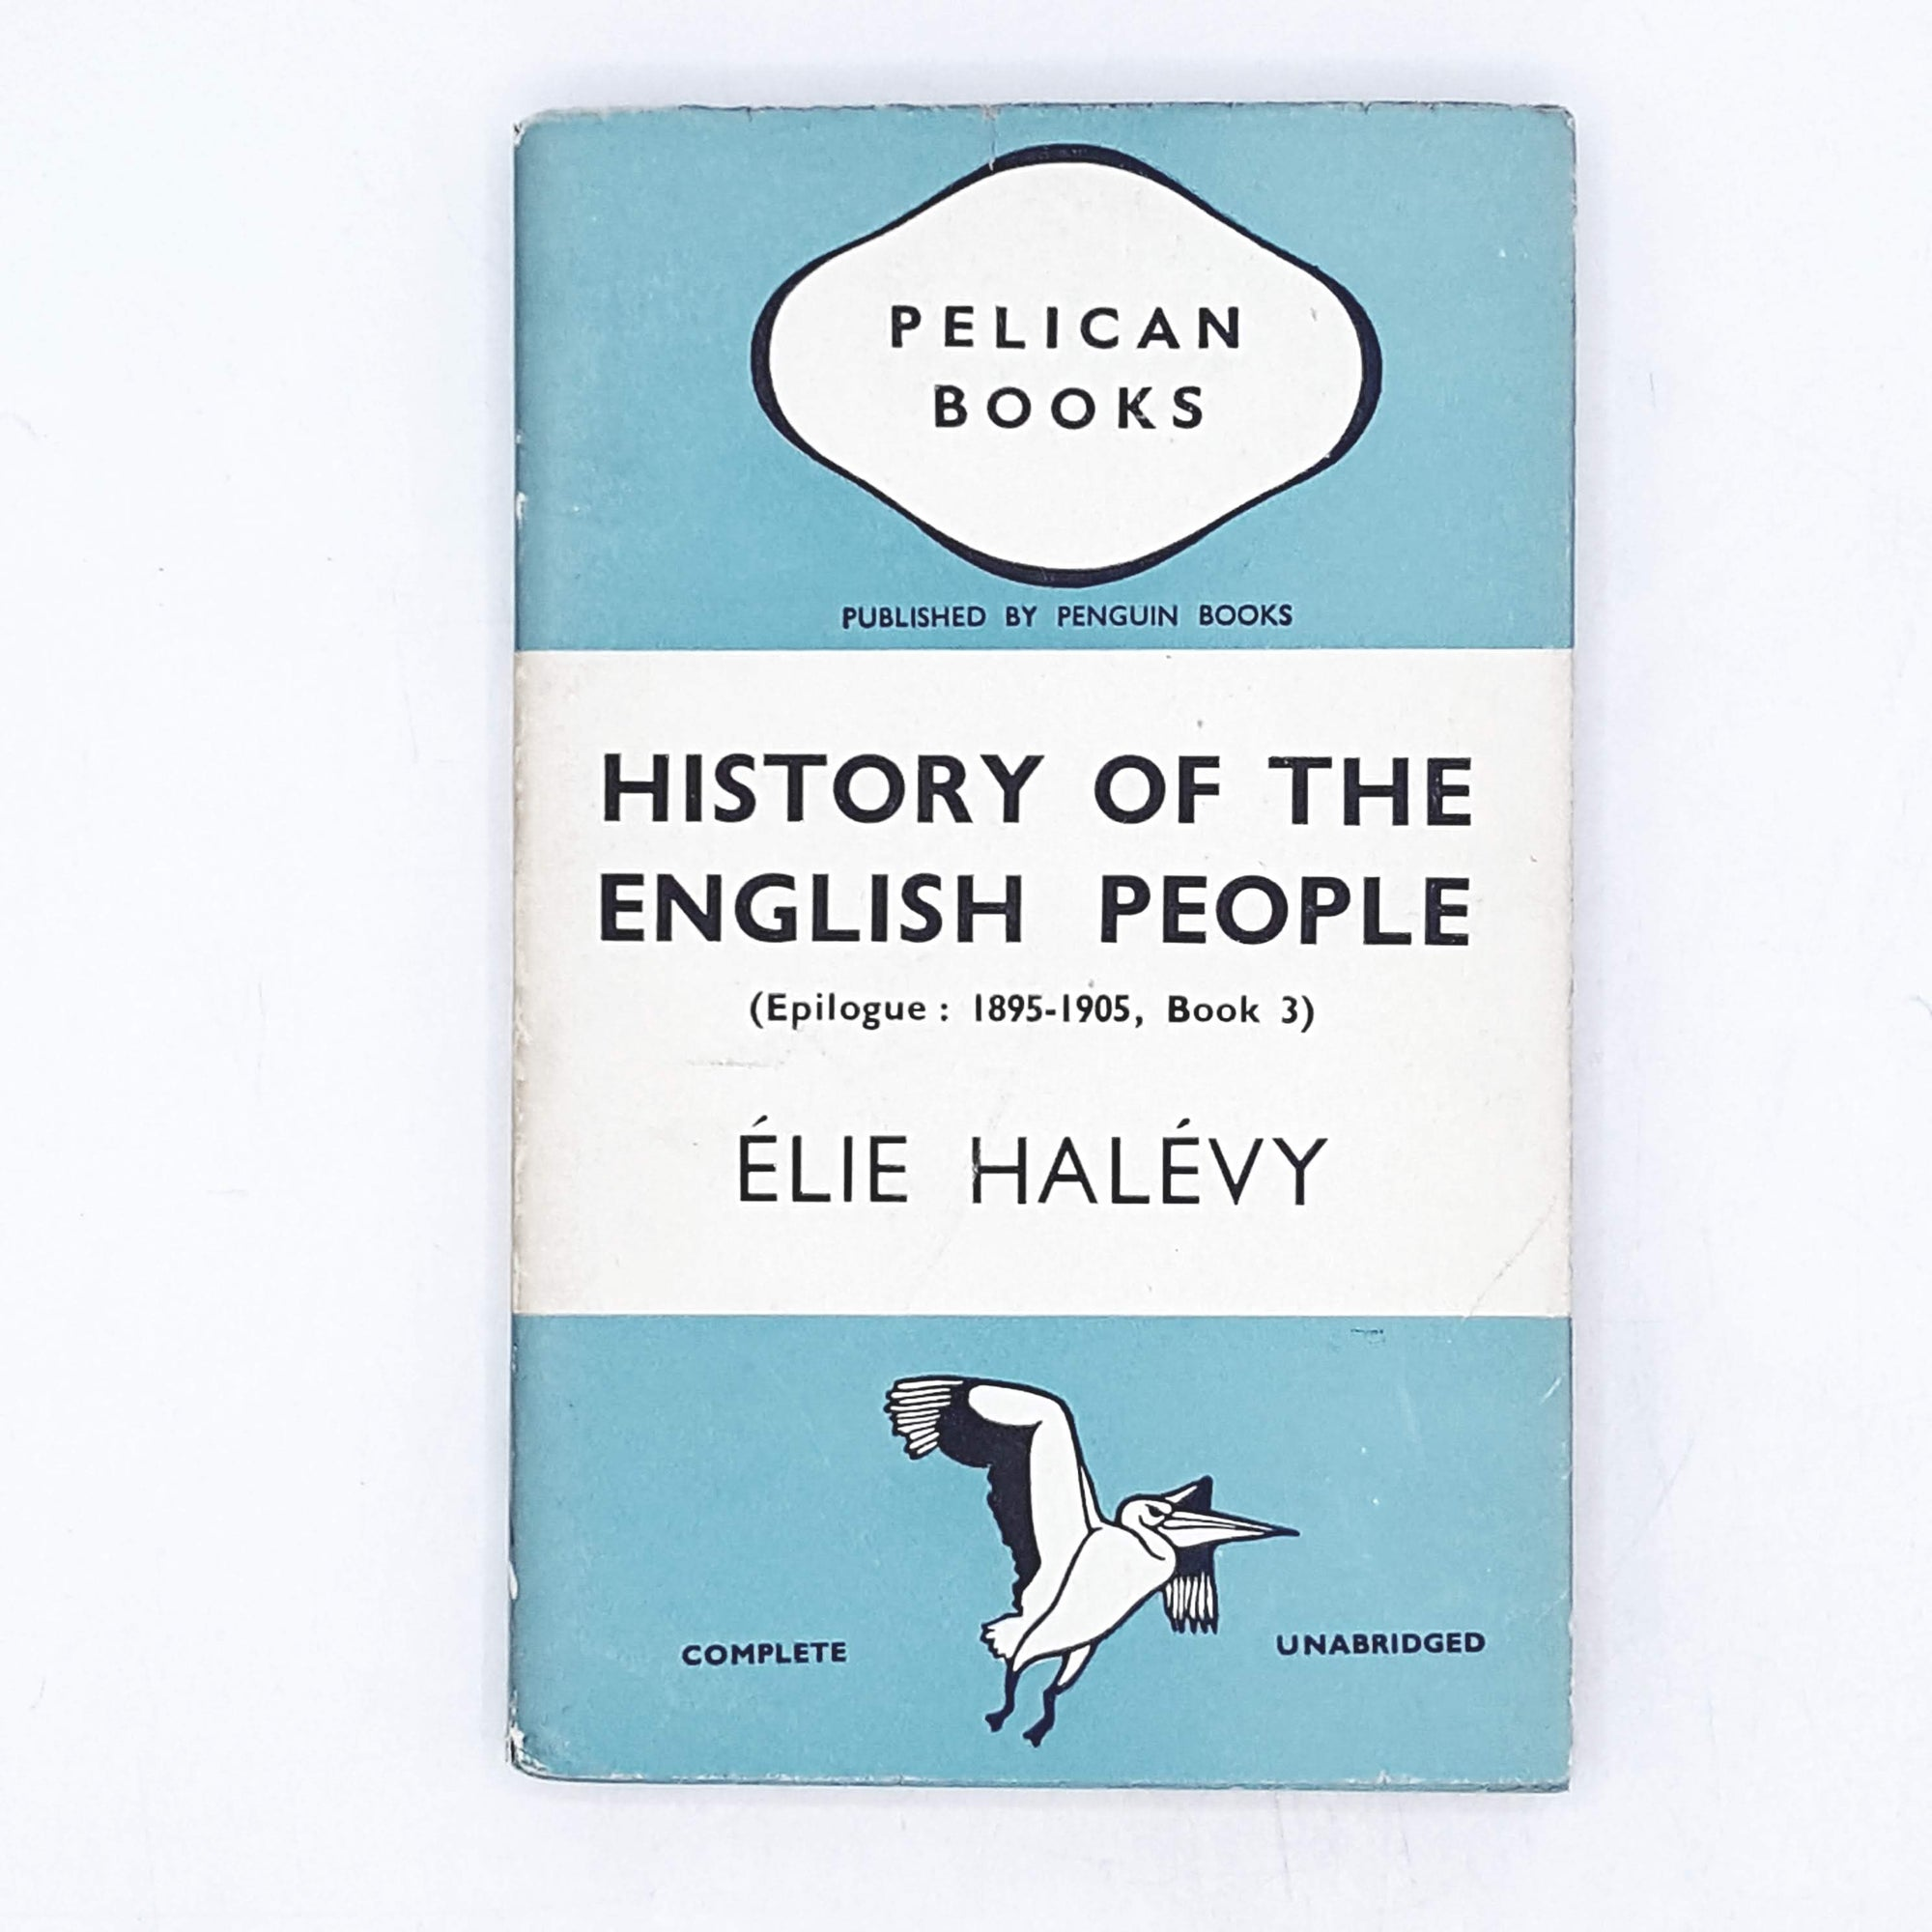 History of the English People III by Elie Halevy 1940